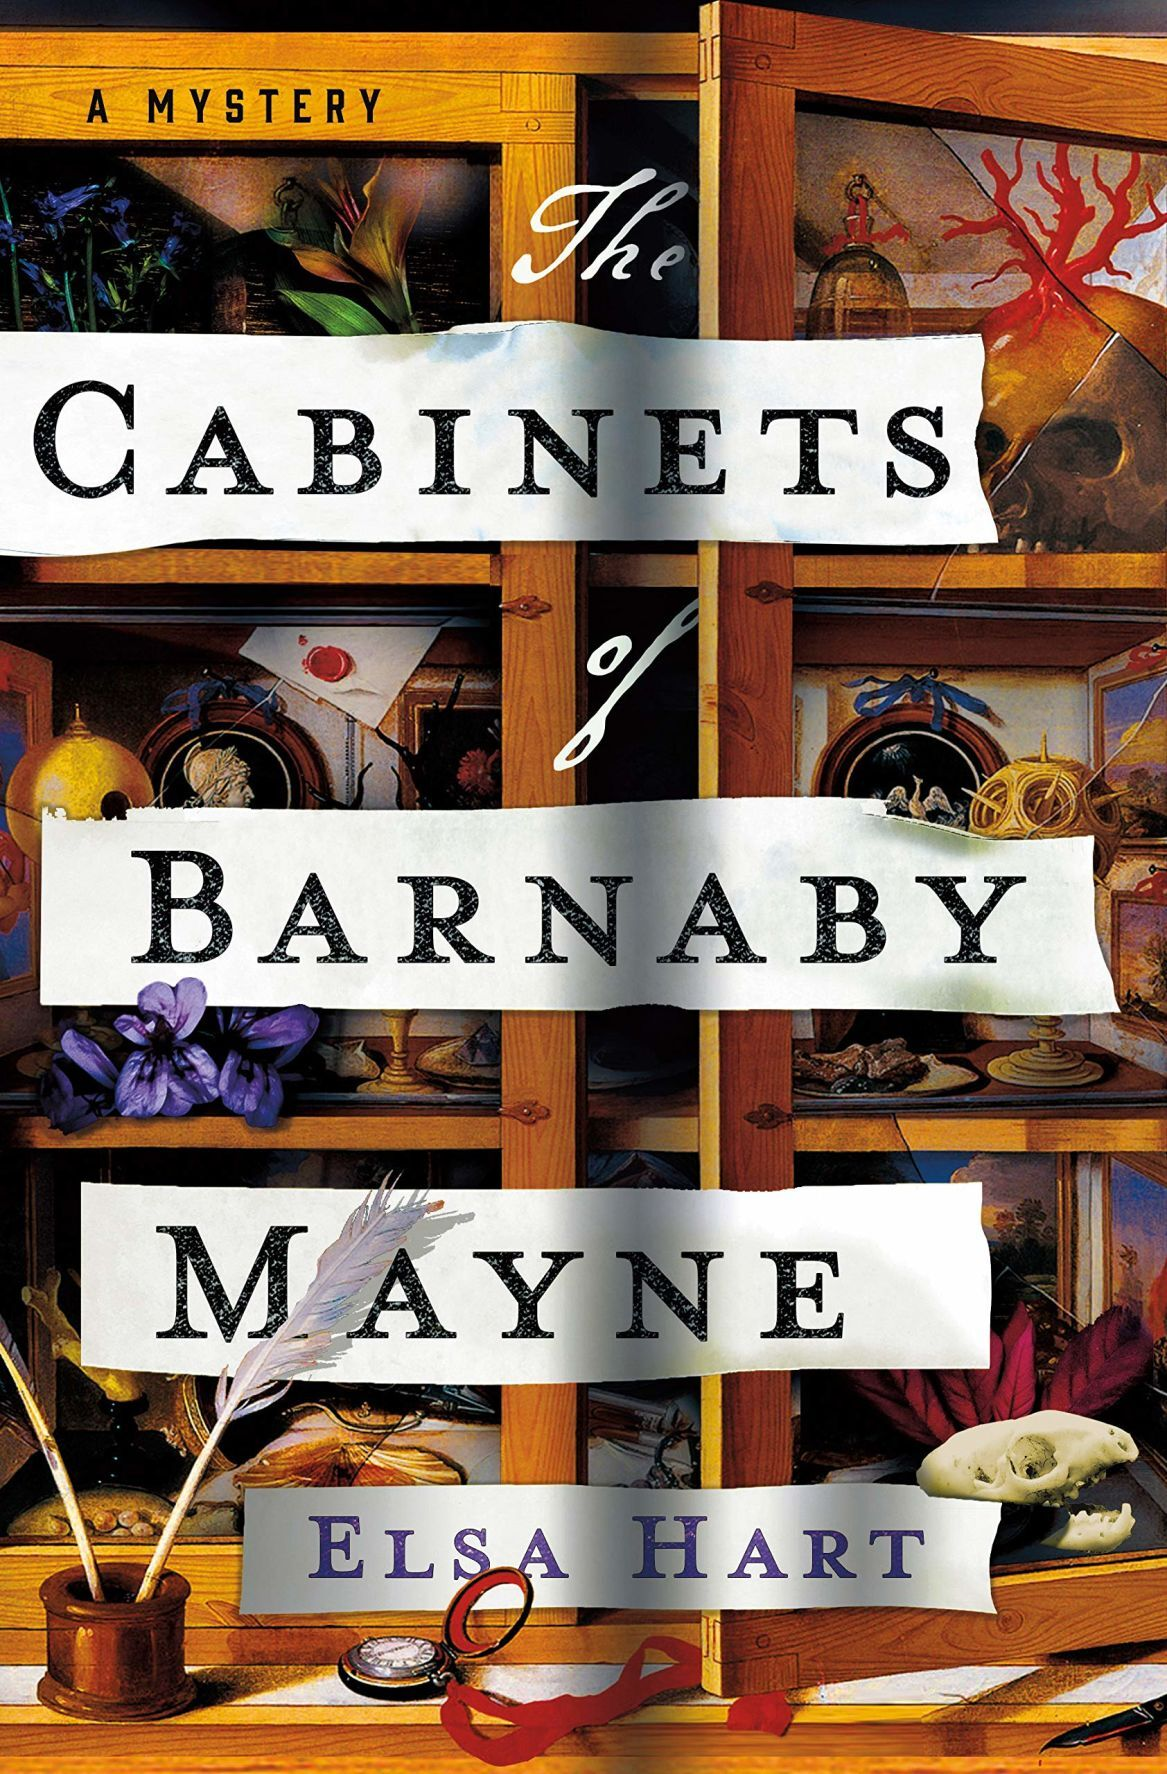 'The Cabinets of Barnaby Mayne'